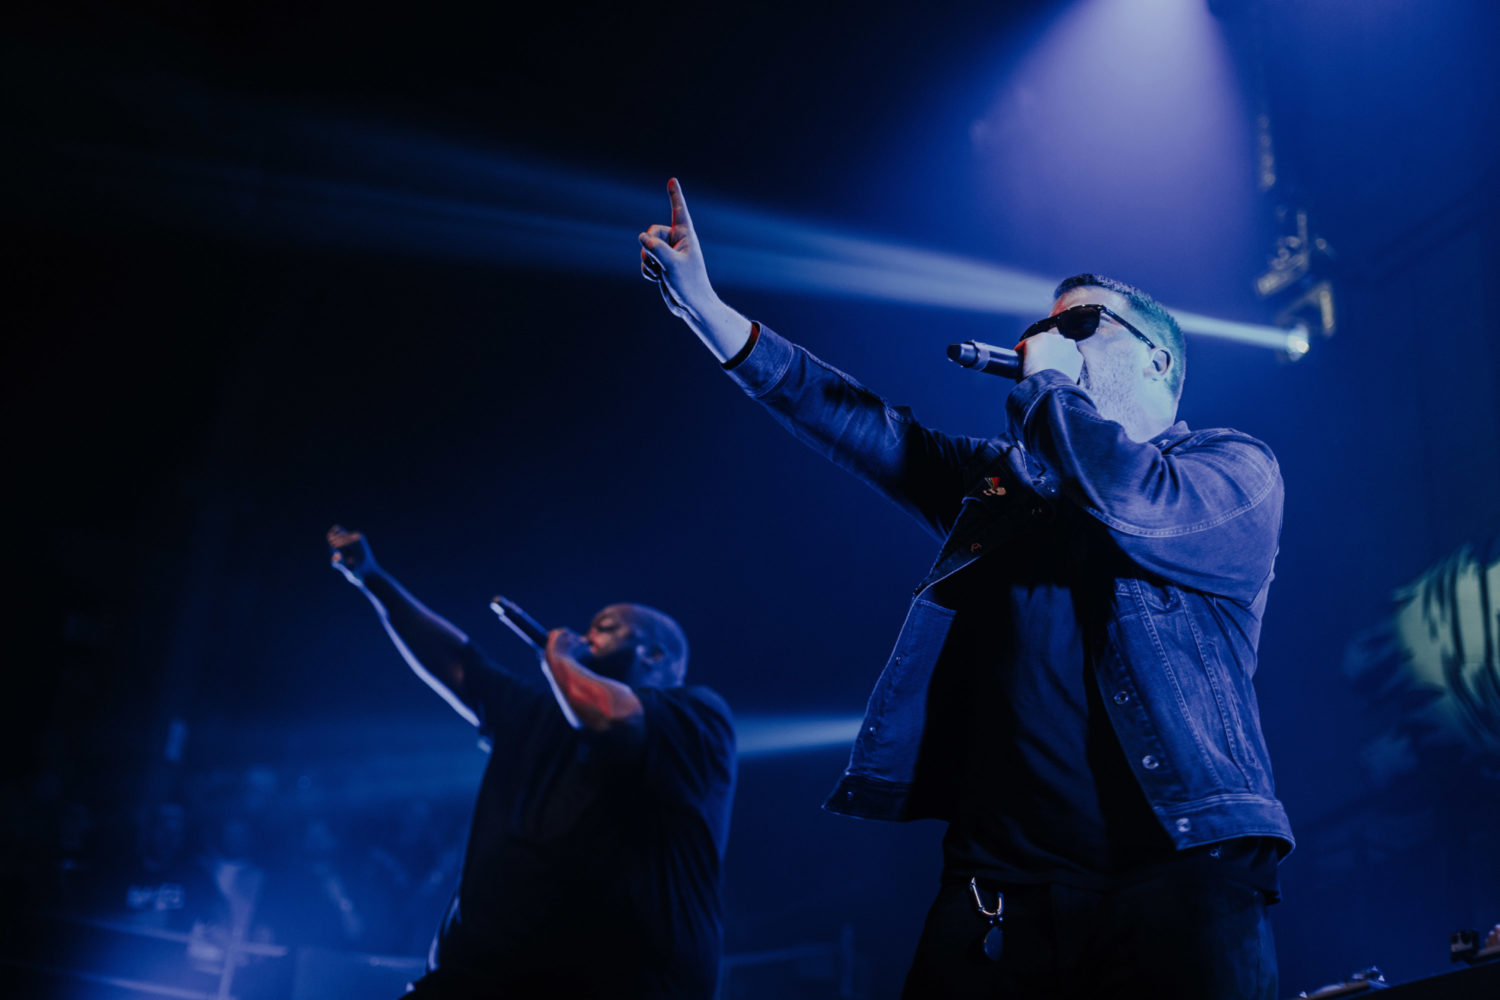 Run The Jewels have announced extra UK dates